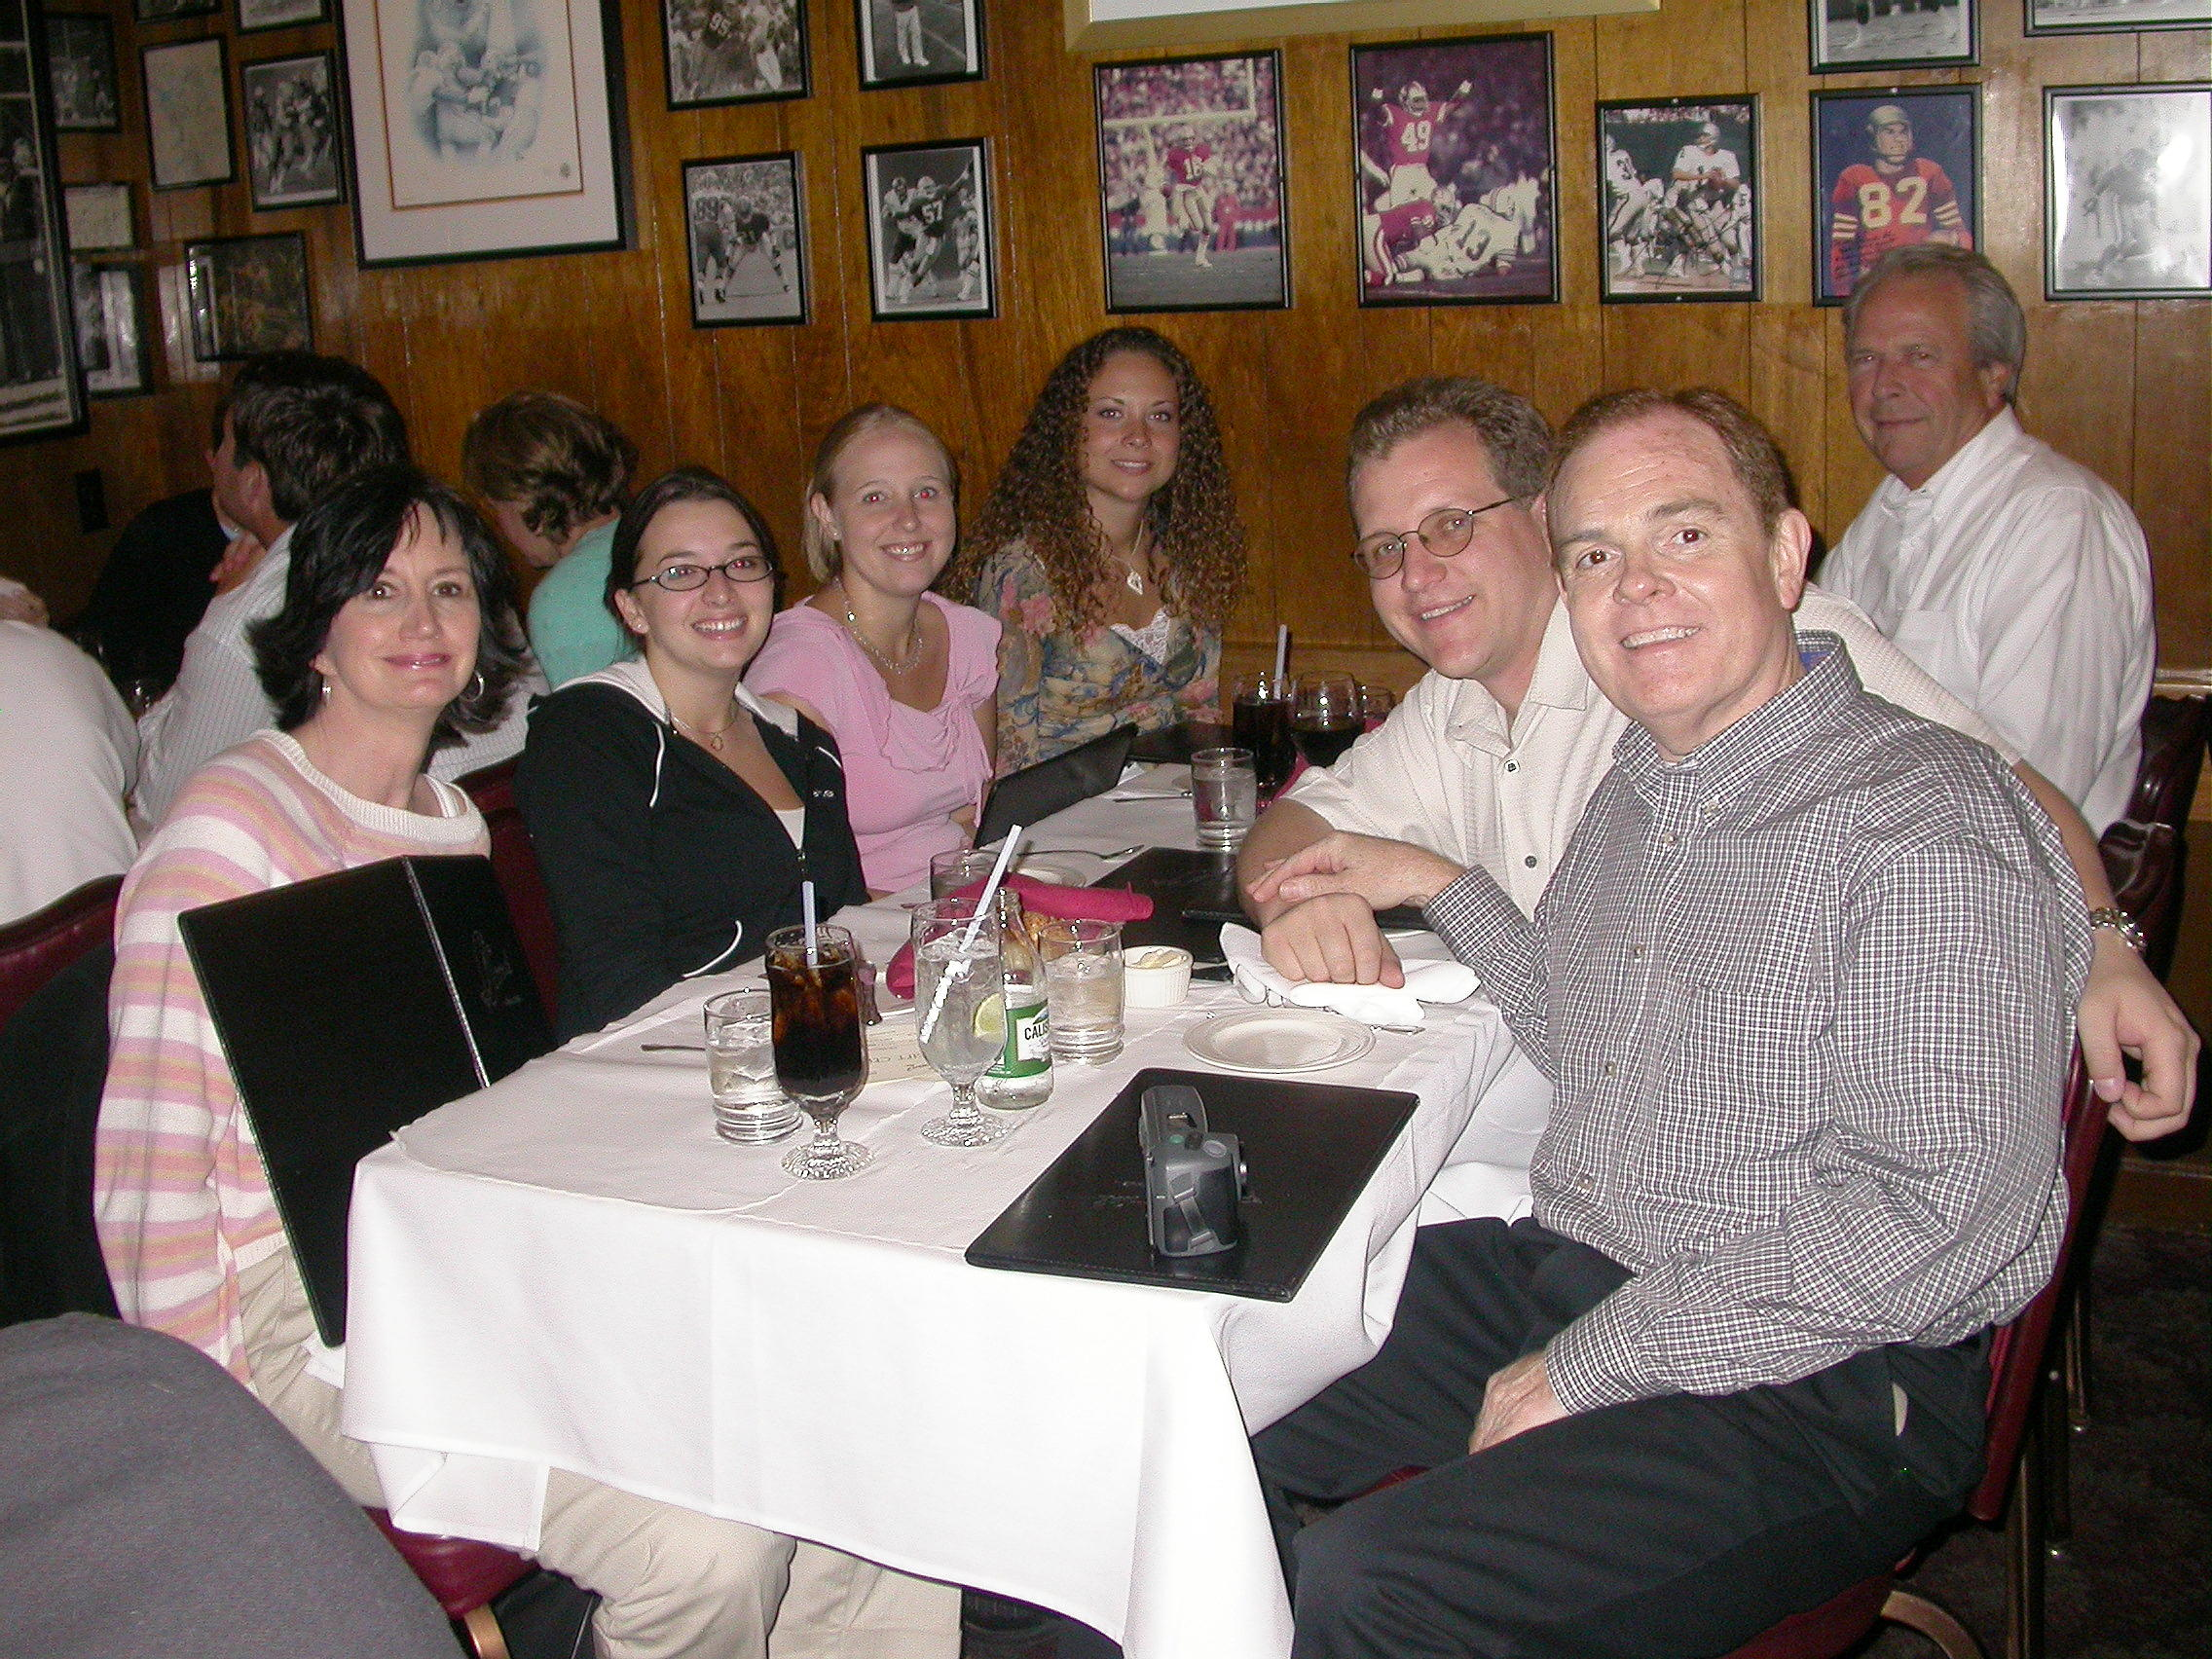 The whole Southgate Coins crew, plus friends, dining at Scoma's